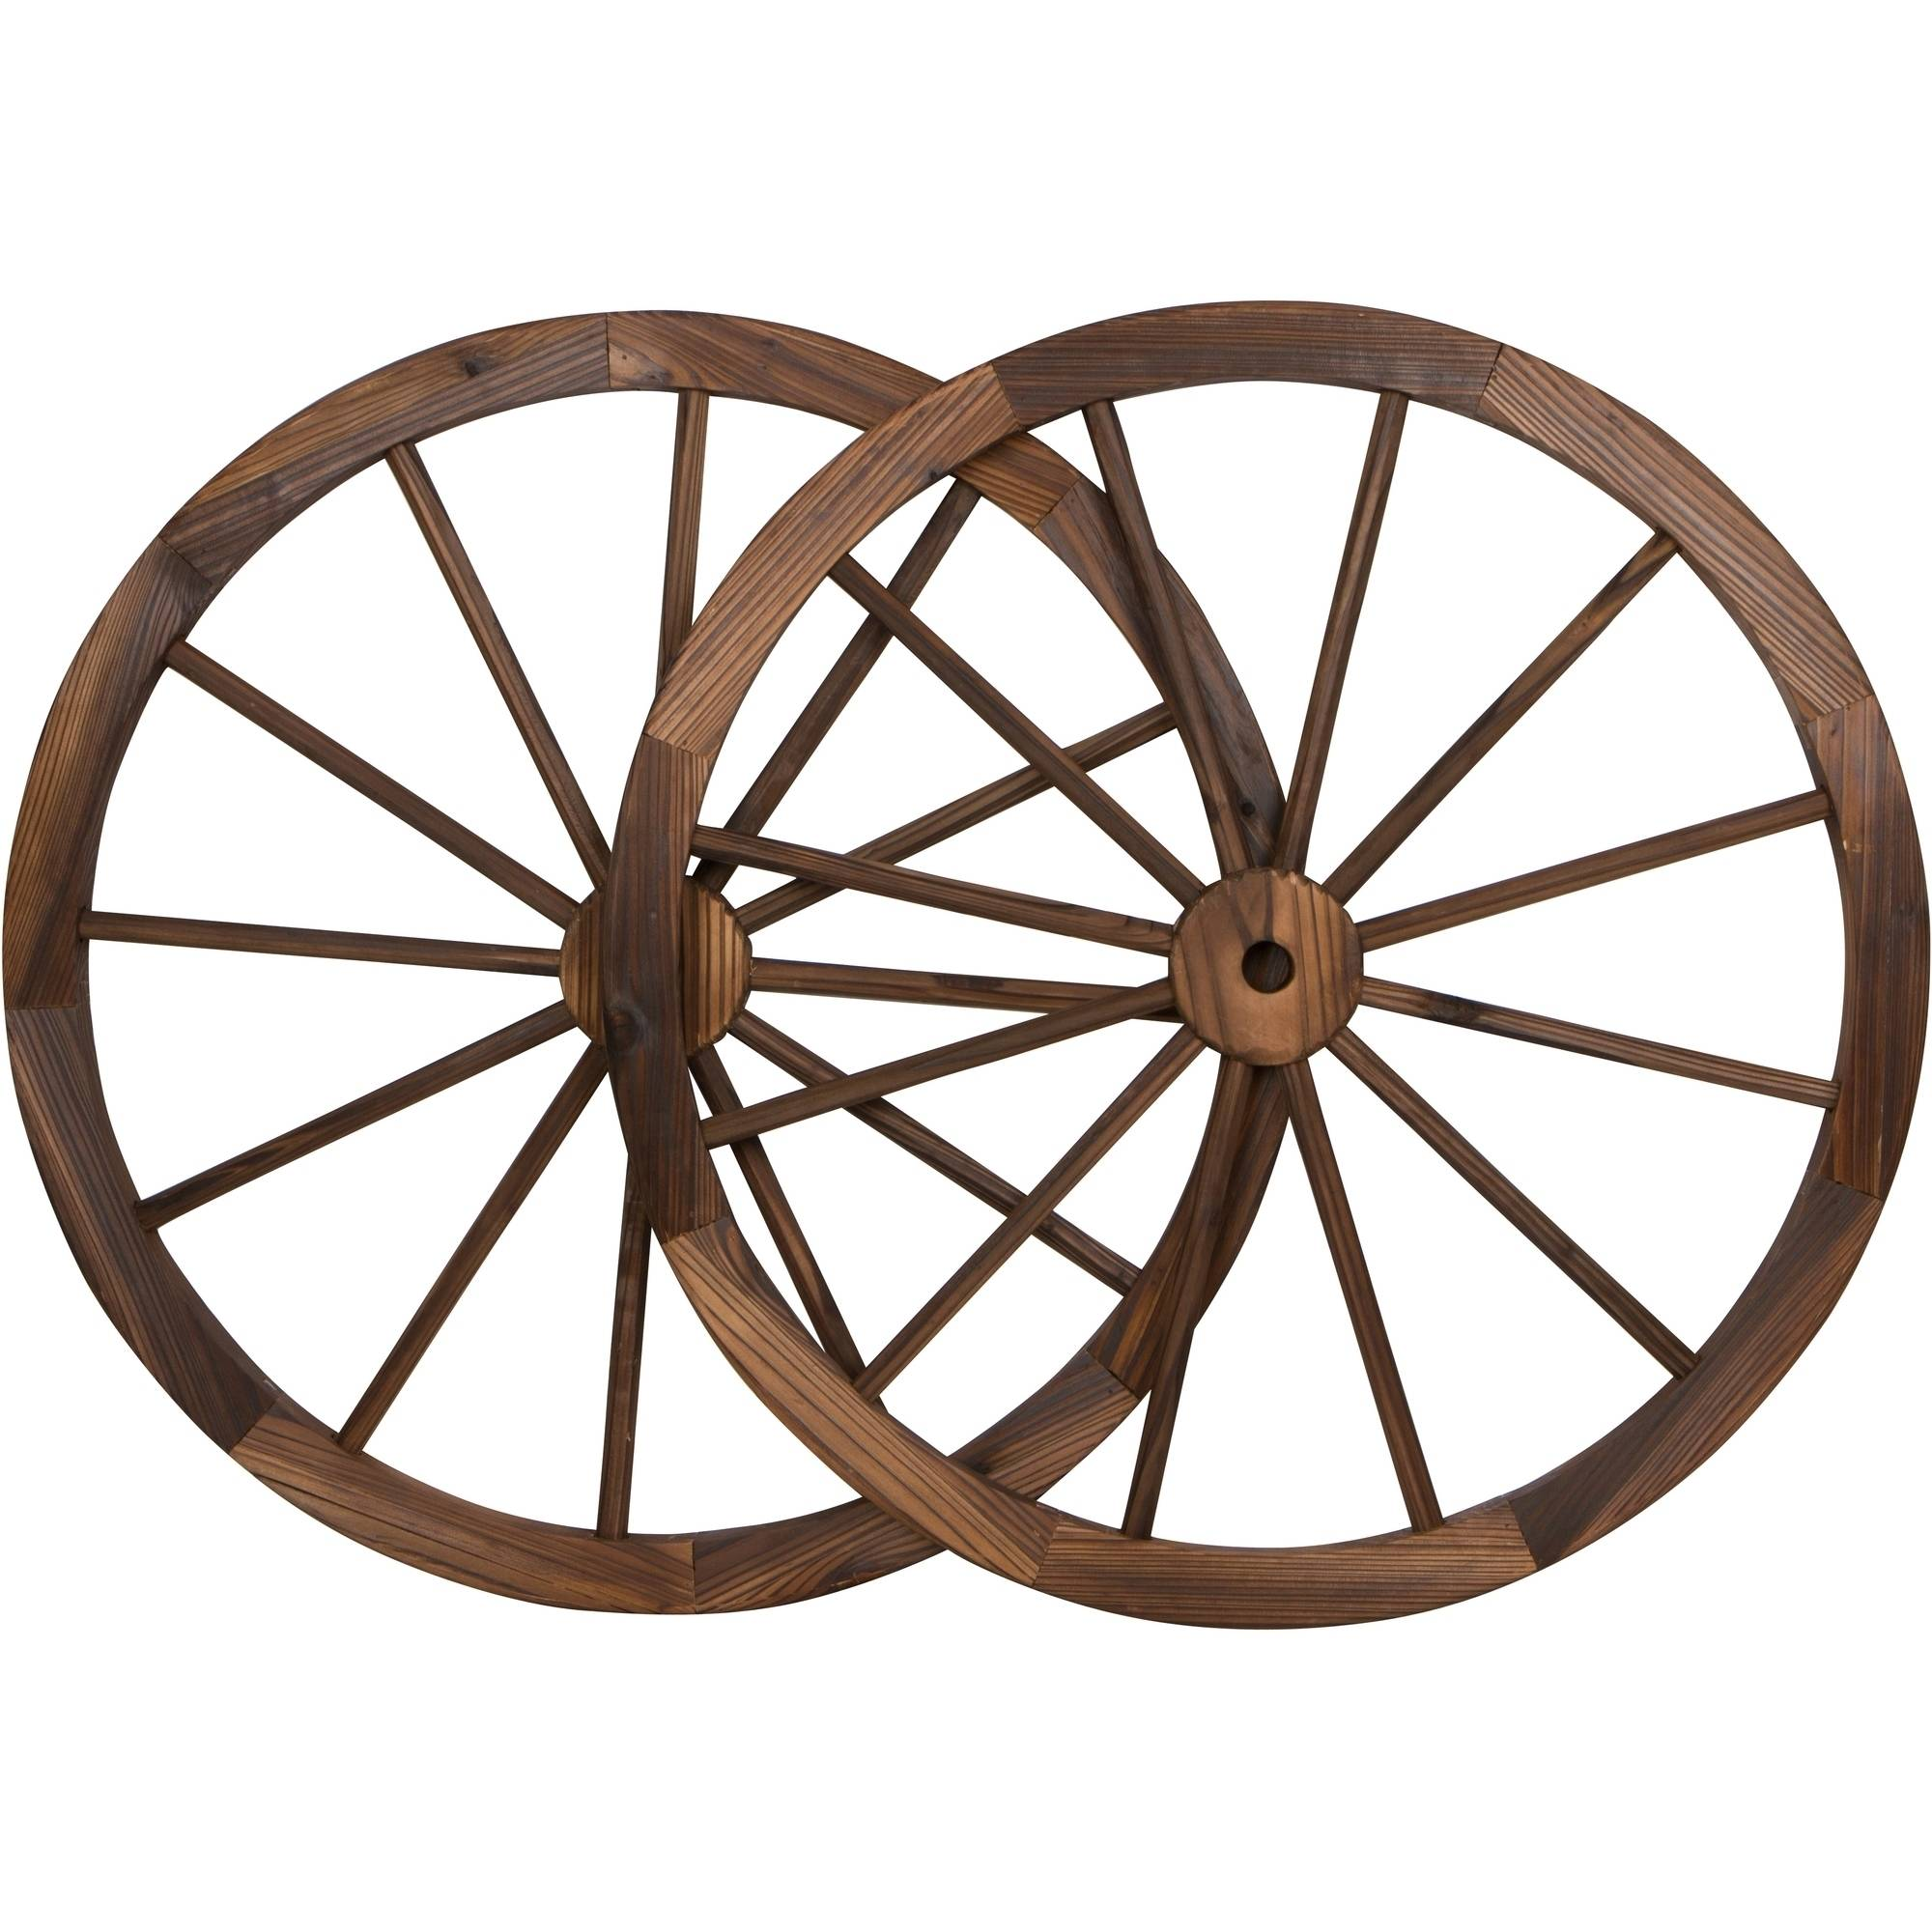 "Decorative Vintage Wood Garden Wagon Wheel With Steel Rim, 30"" Diameter, Set of 2"